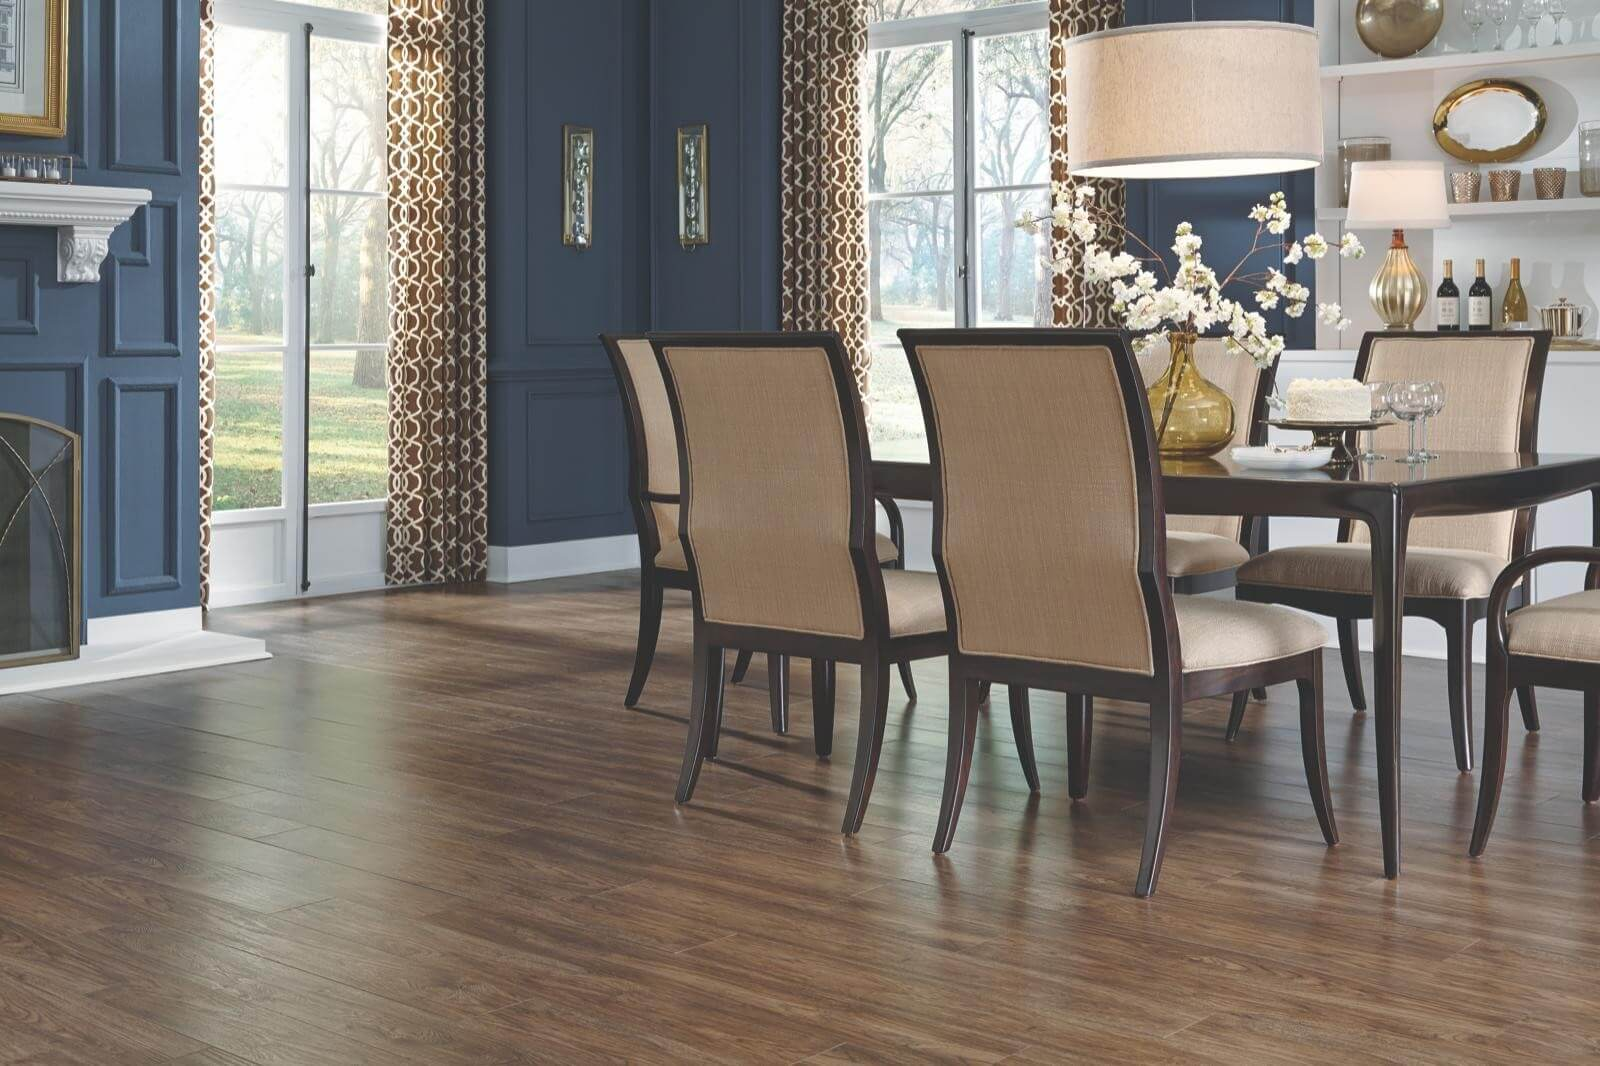 Luxury Vinyl Plank Flooring Makes a Grand Entrance